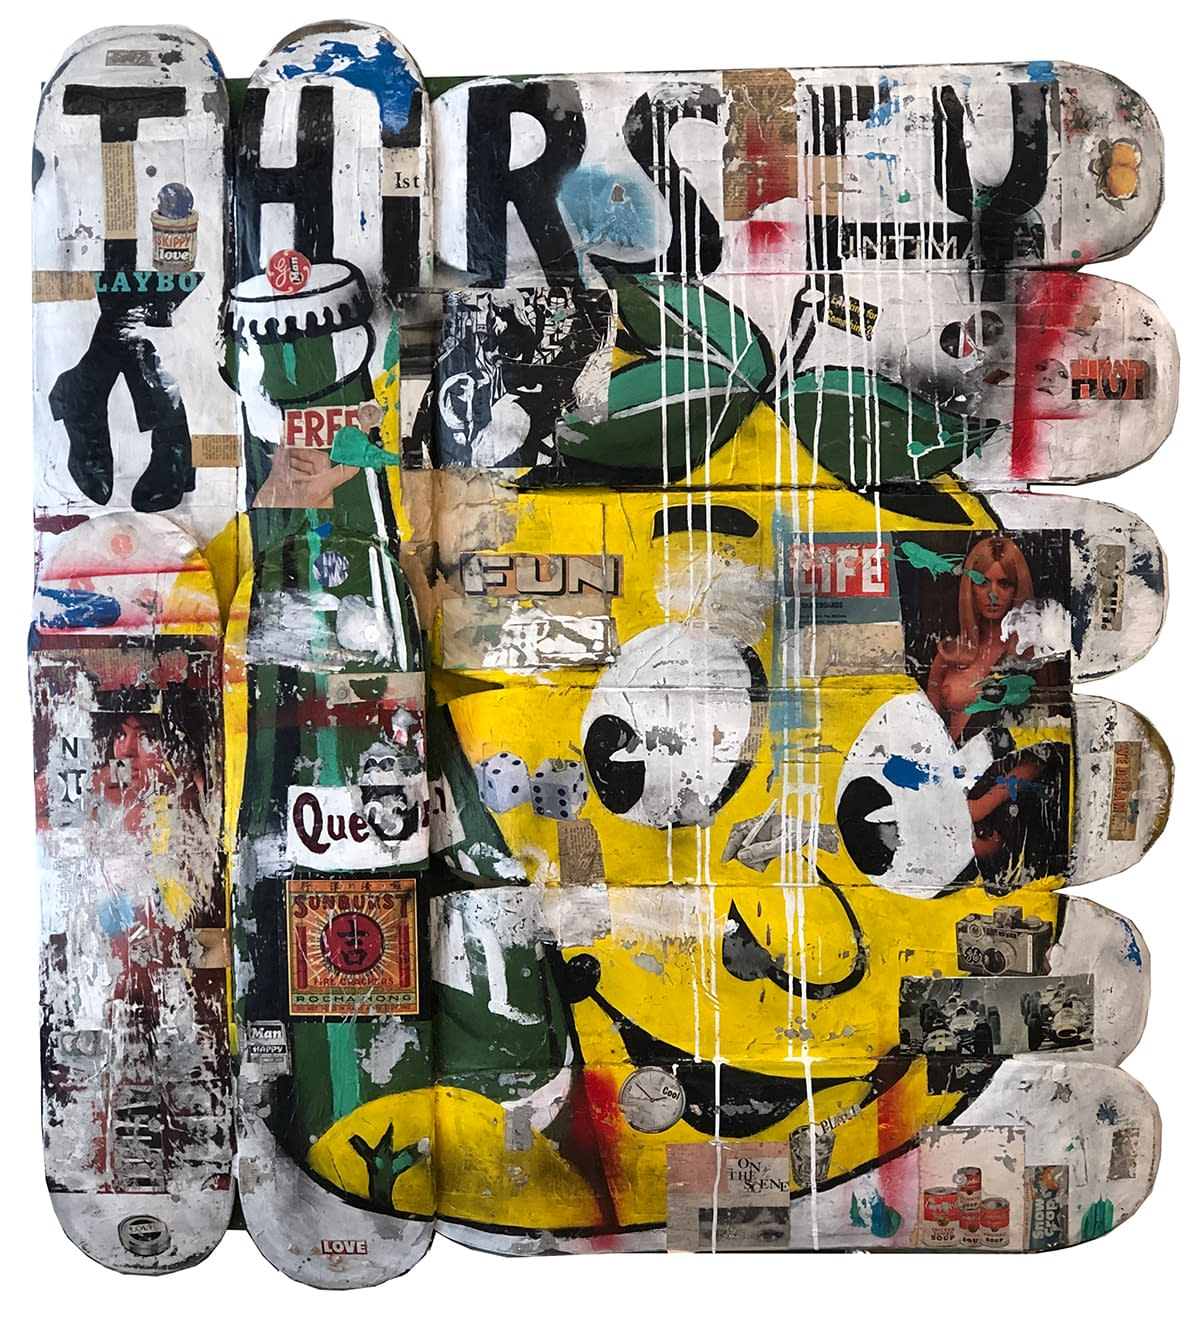 Thirsty_Greg_Miller_Acrylic_Paint_Spray_Paint_Collage_Paper_on_Skateboard_Planks_51_x_48